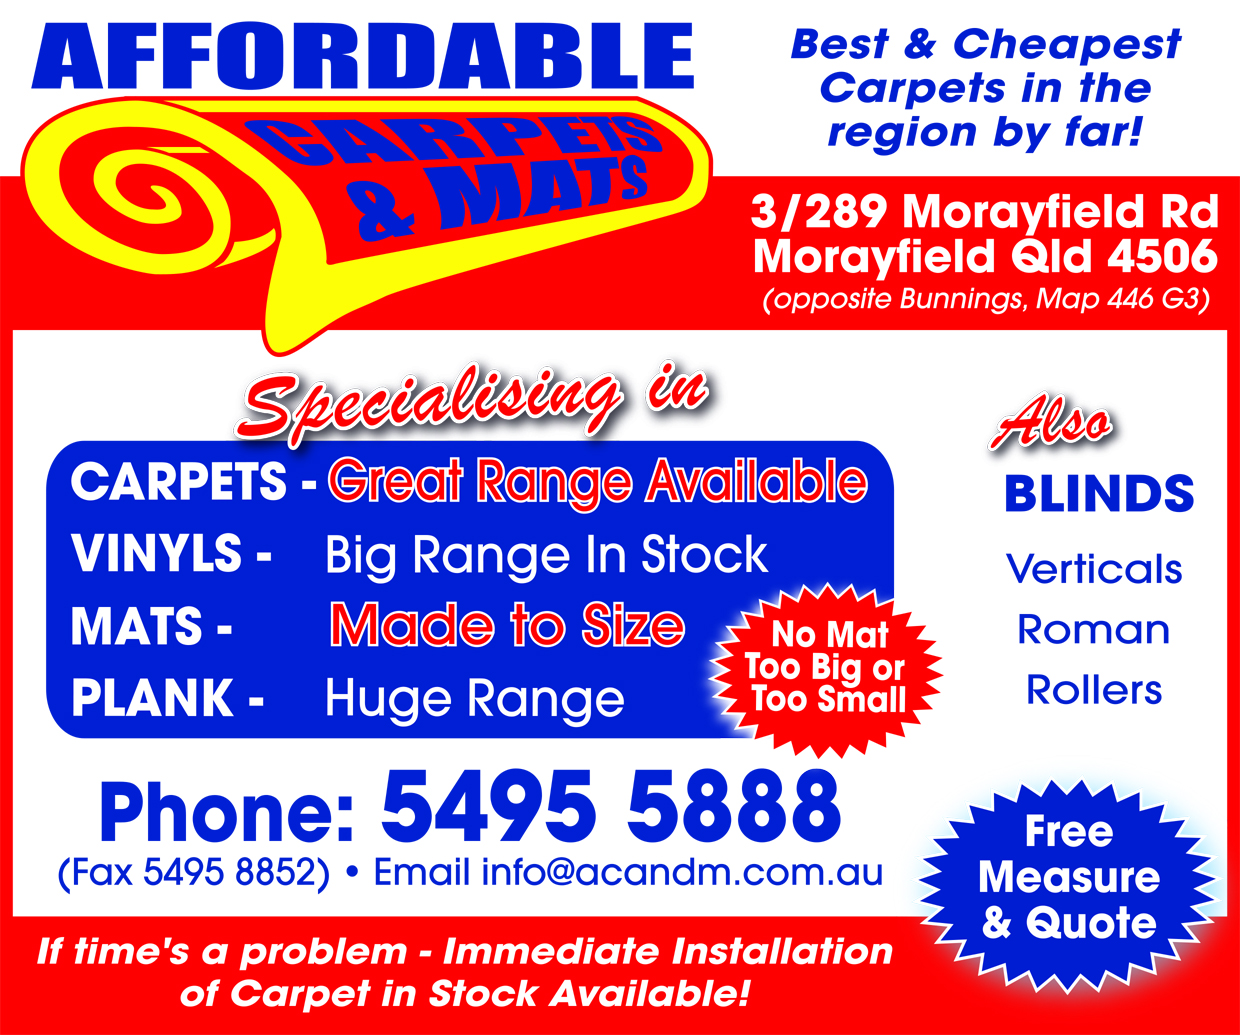 Affordable Carpets & Mats - advertisement